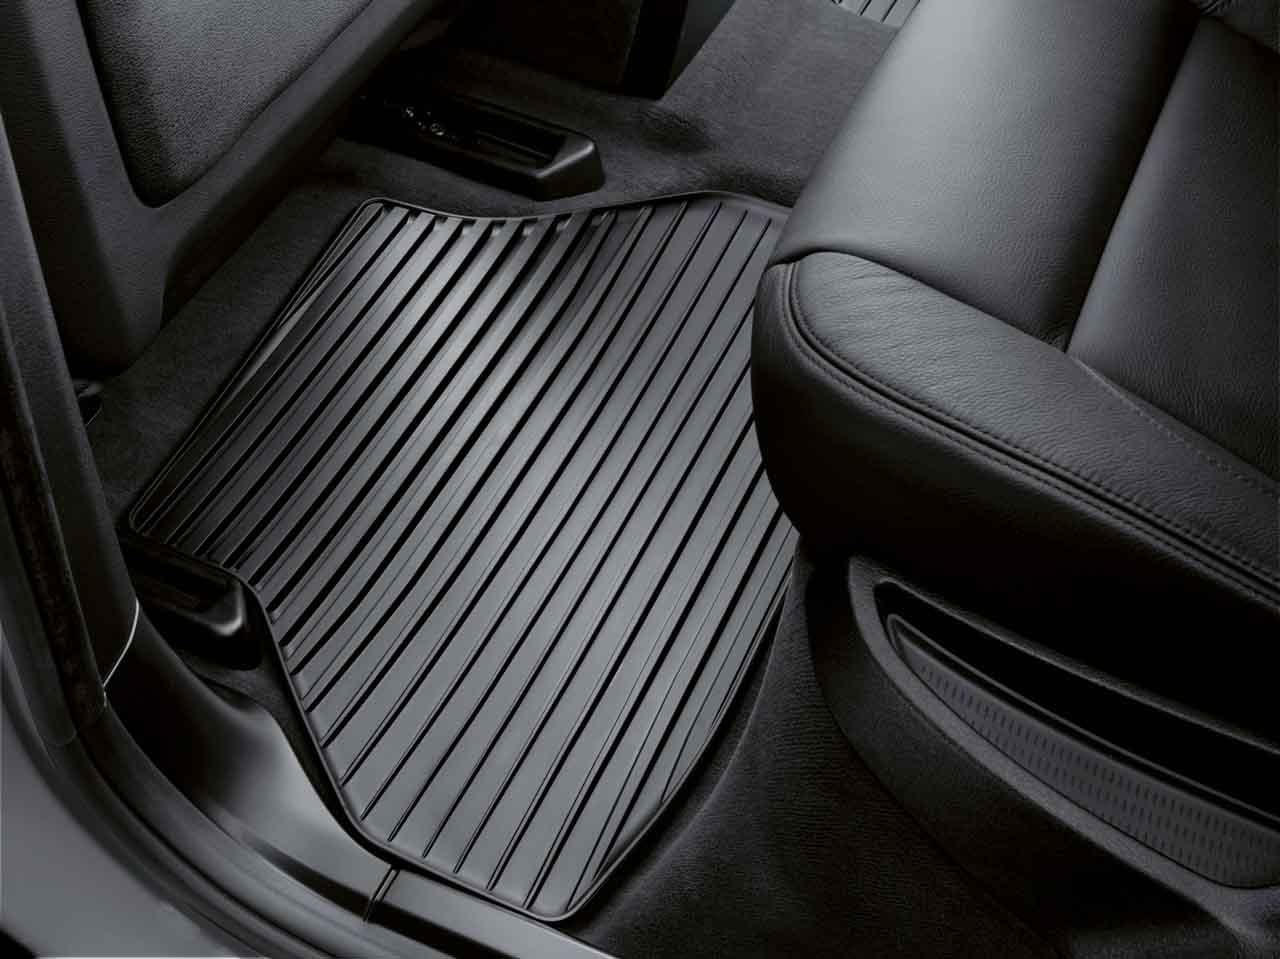 Weather Car Mats >> BMW Genuine All-Weather Rubber Rear Floor Mats Set Anthracite E70 X5 51472231955 | eBay